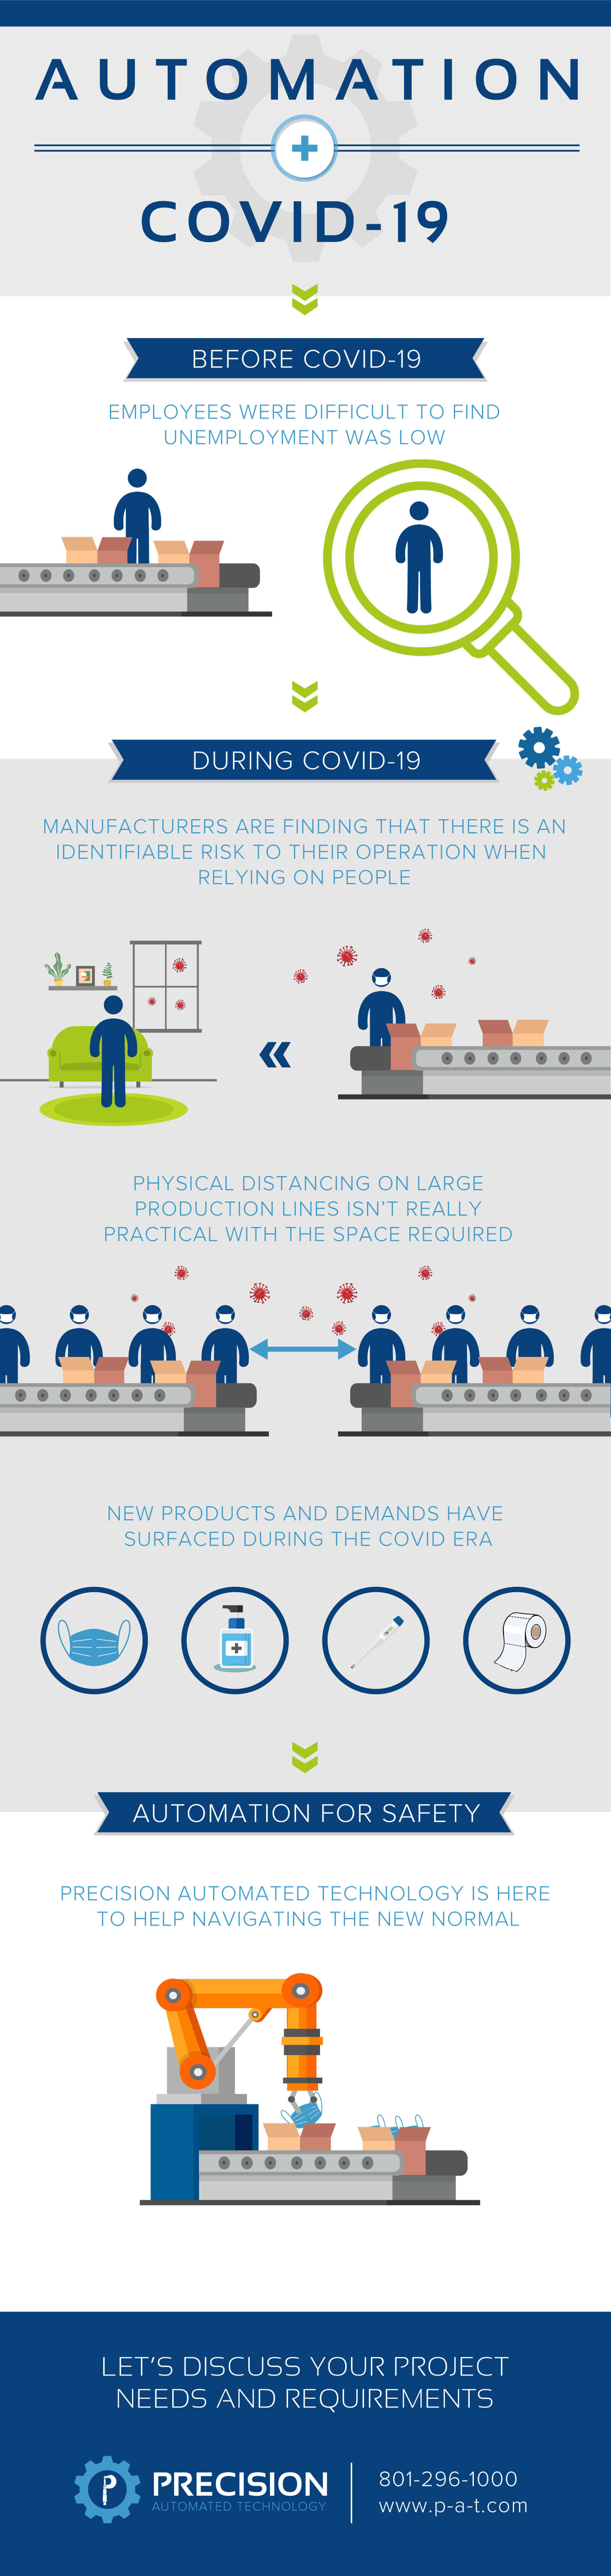 Automation During Covid-19 Infographic